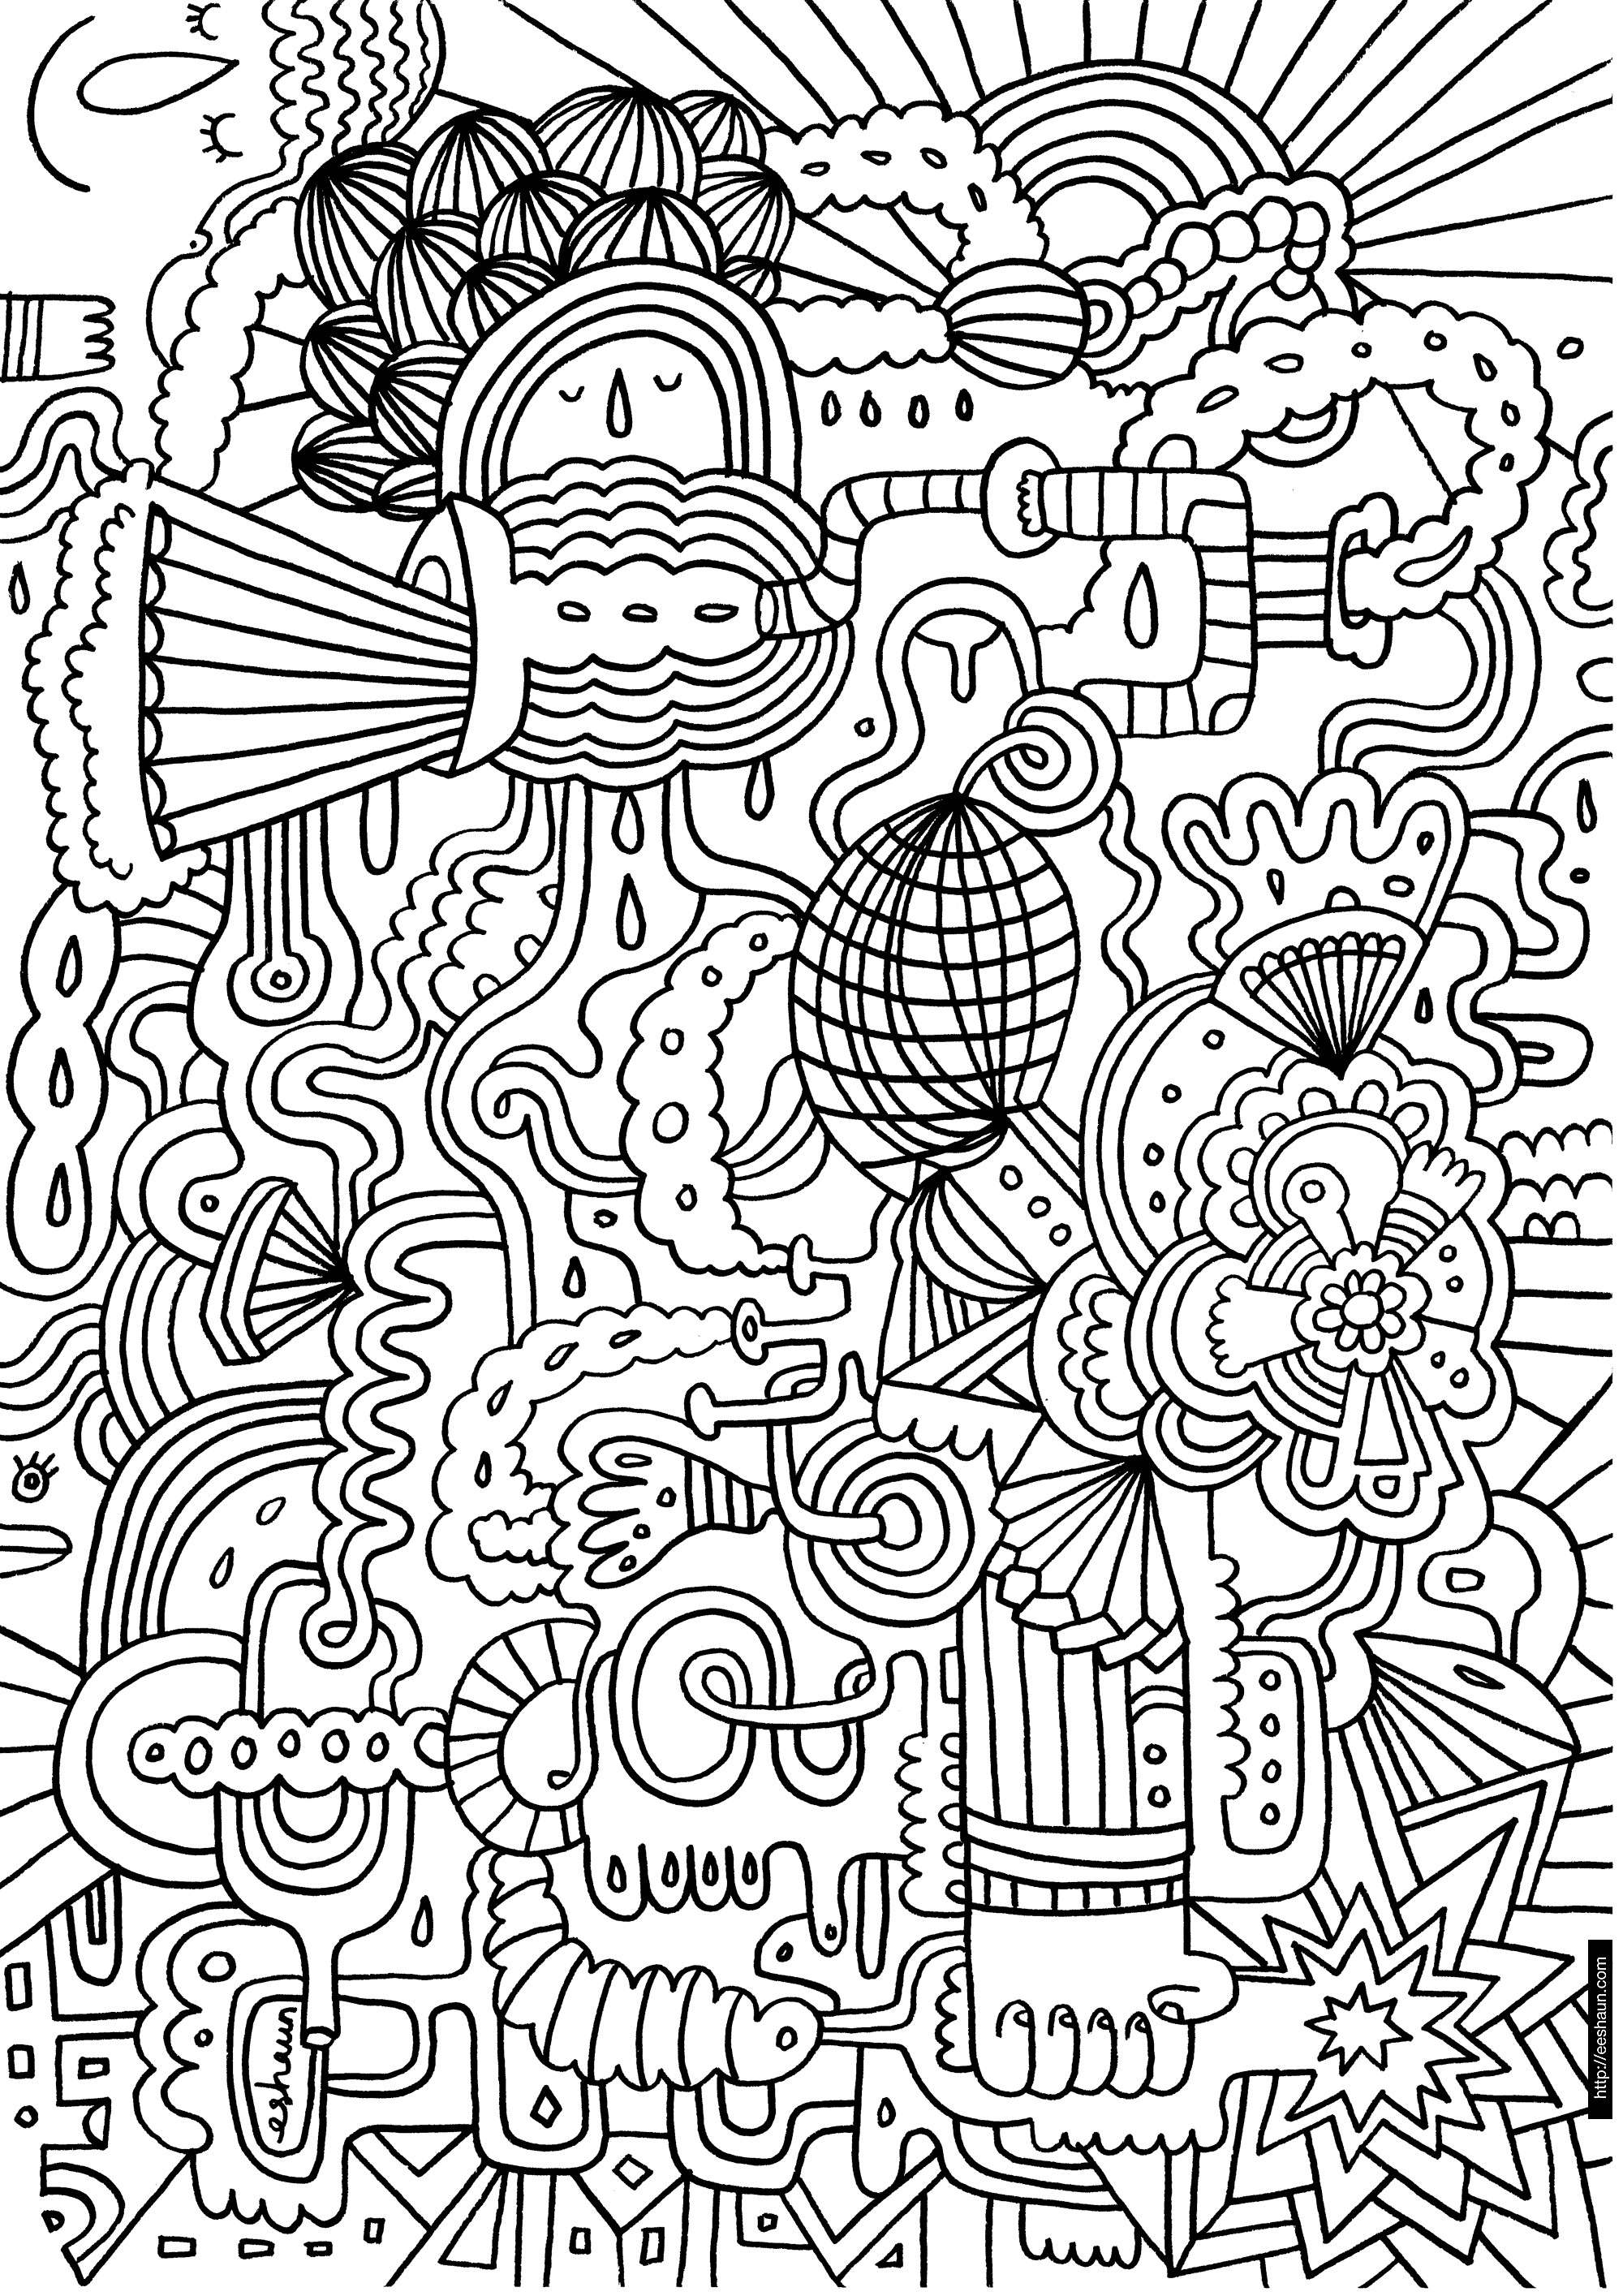 Best ideas about Free Printable Christmas Coloring Sheets For Girls Hard . Save or Pin Hard Coloring Pages Best Cool Funny Now.